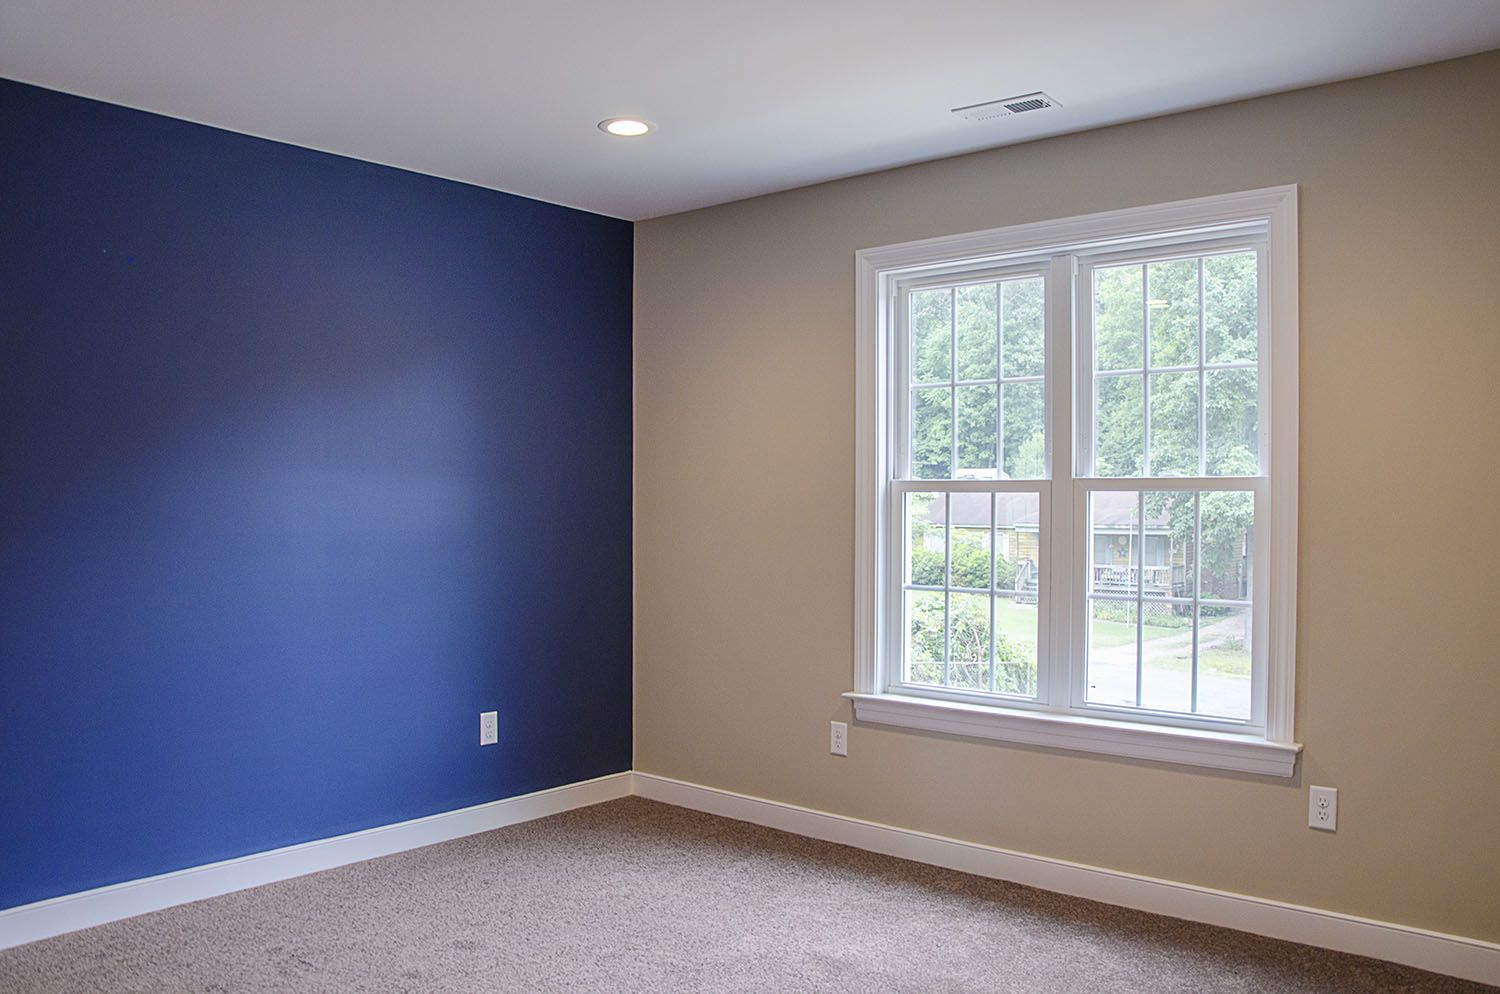 Master Suite With Blue Royal Blue Accent Wall C Balducci Builders